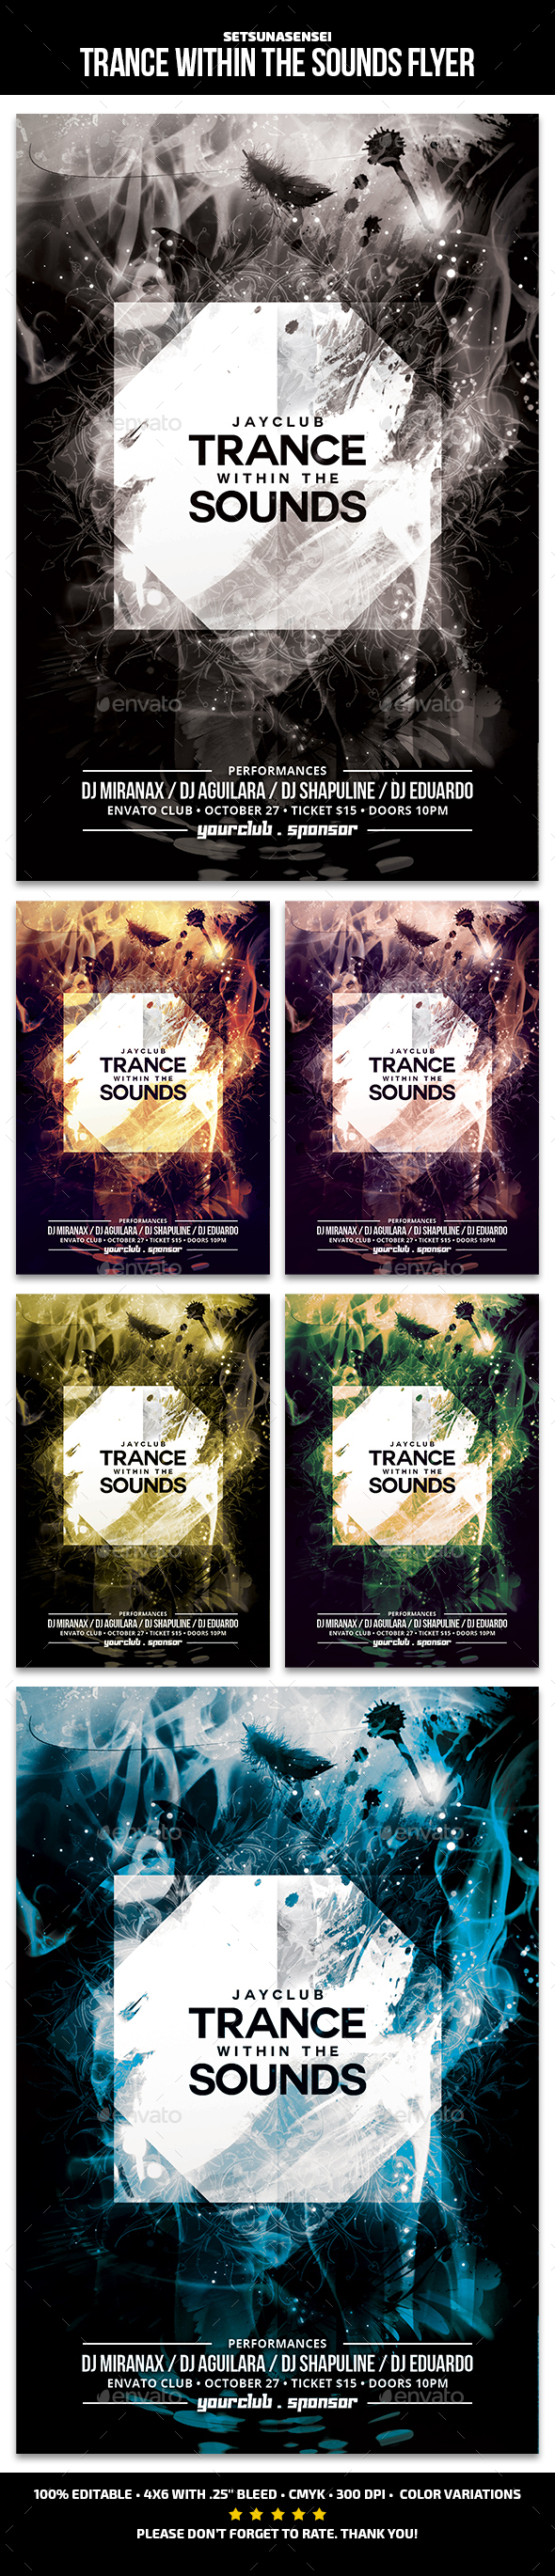 Trance Within the Sounds Flyer - Clubs & Parties Events